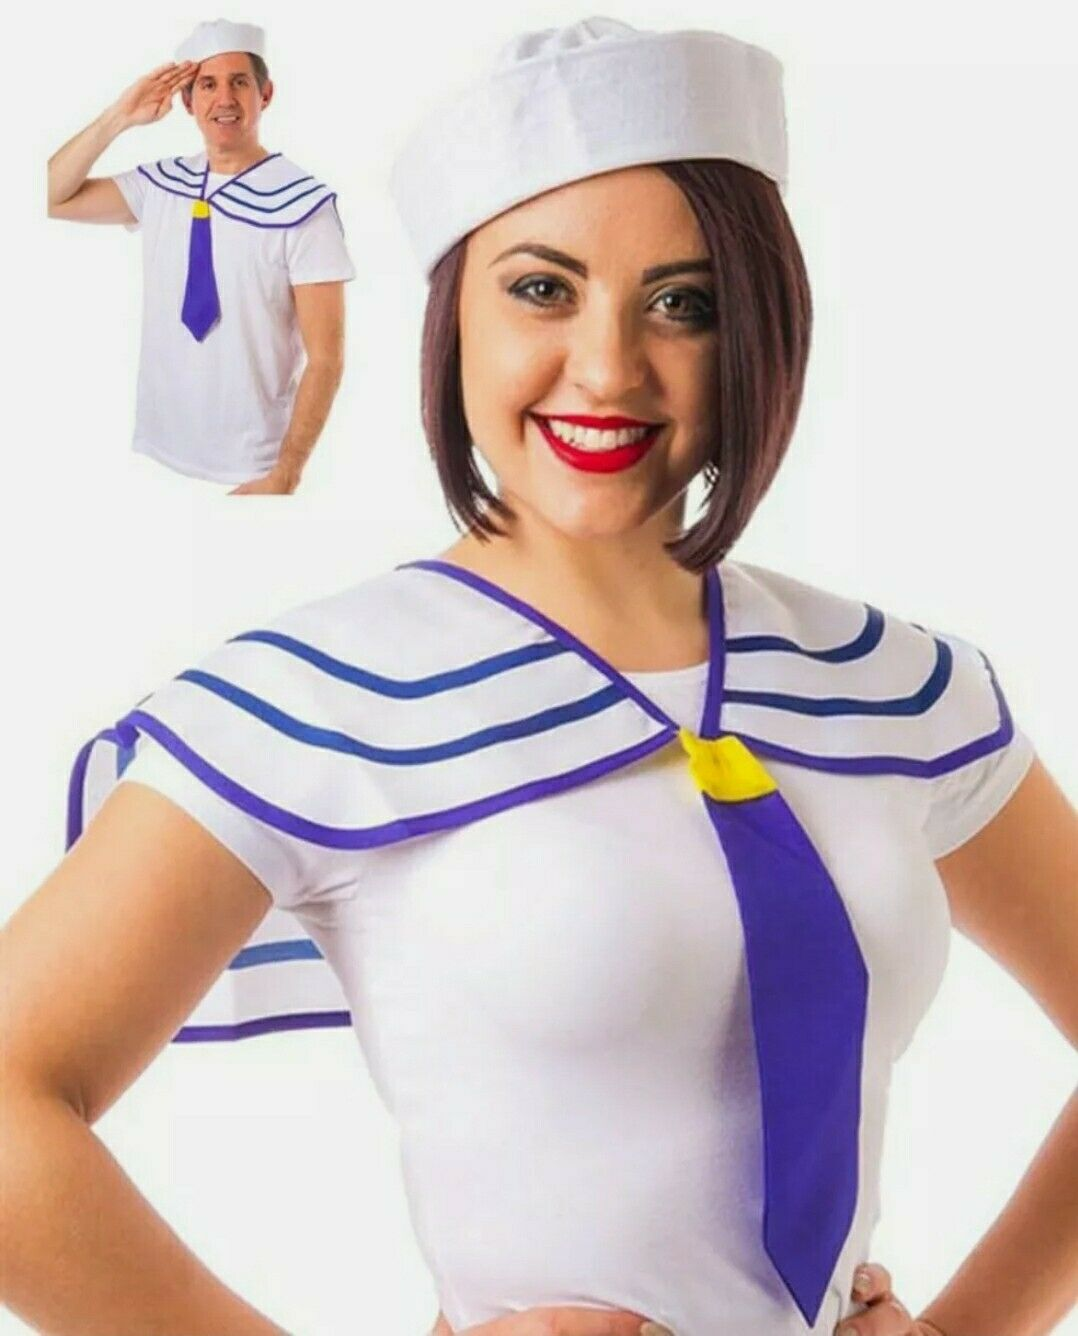 ACCESSORIES/CHARACTER KITS/2 PIECE INSTANT SAILOR KIT